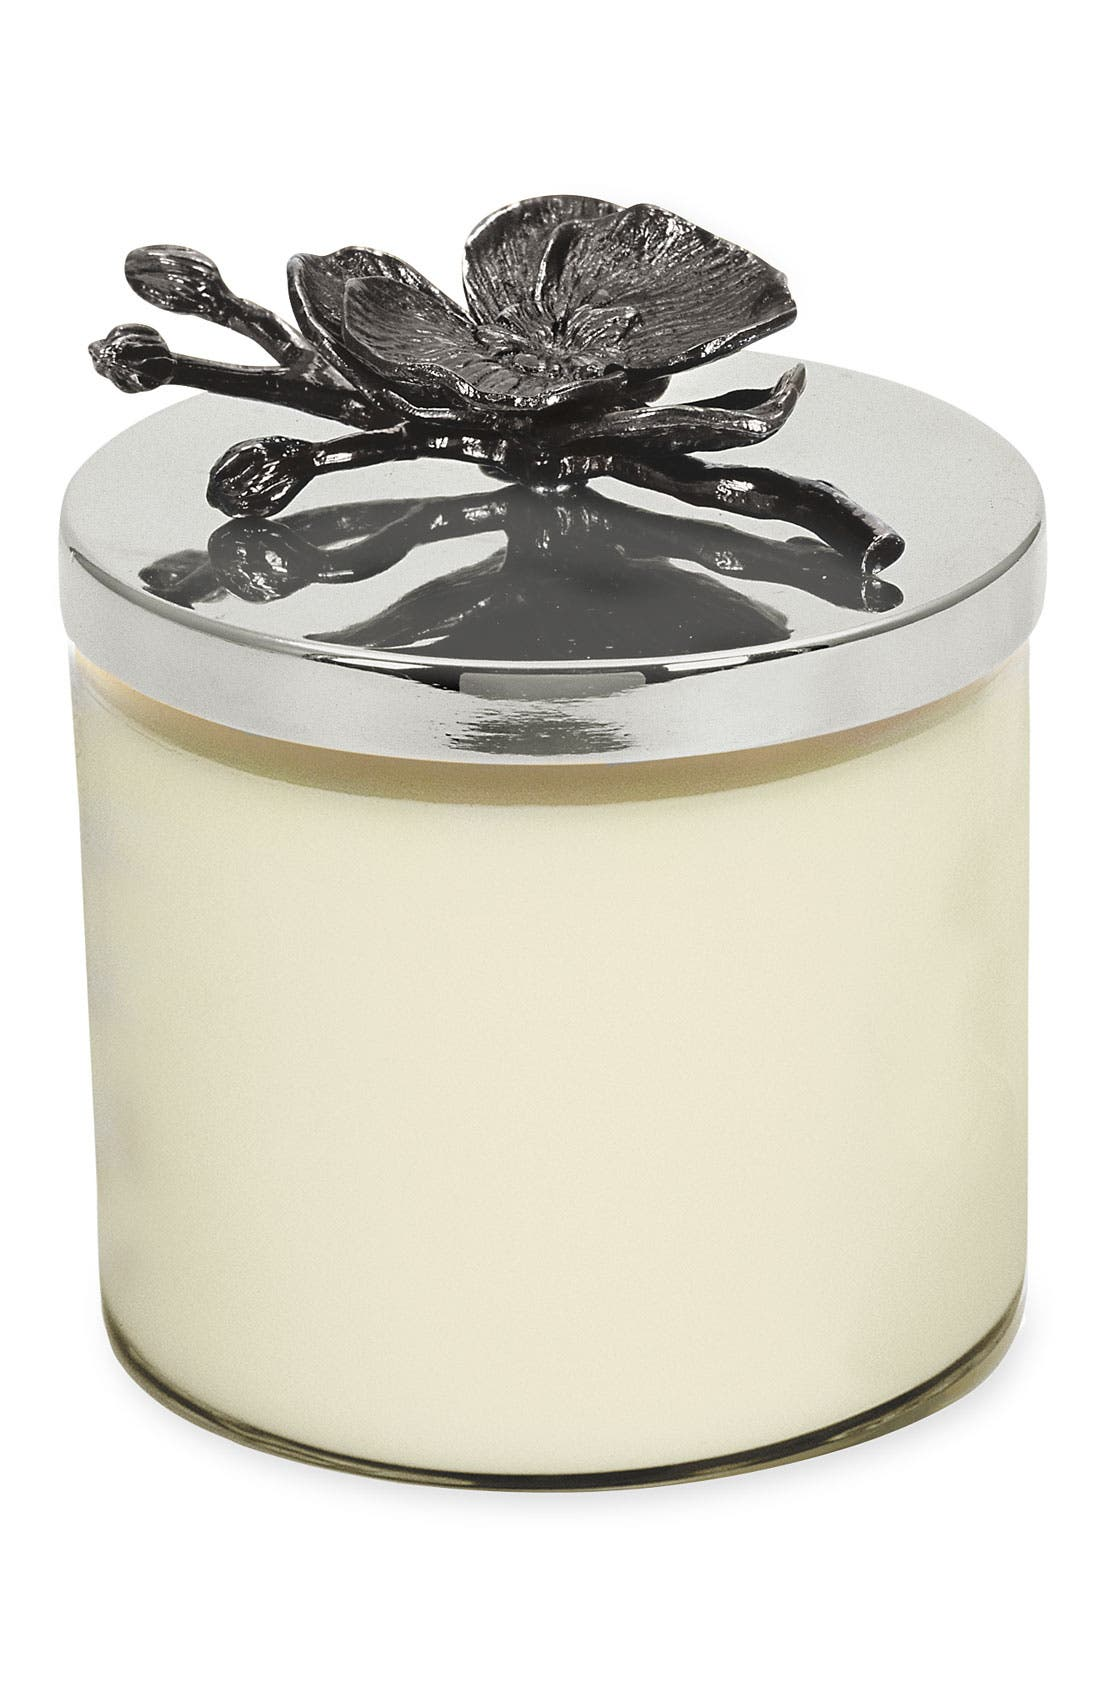 Alternate Image 1 Selected - Michael Aram 'Black Orchid' Soy Wax Candle